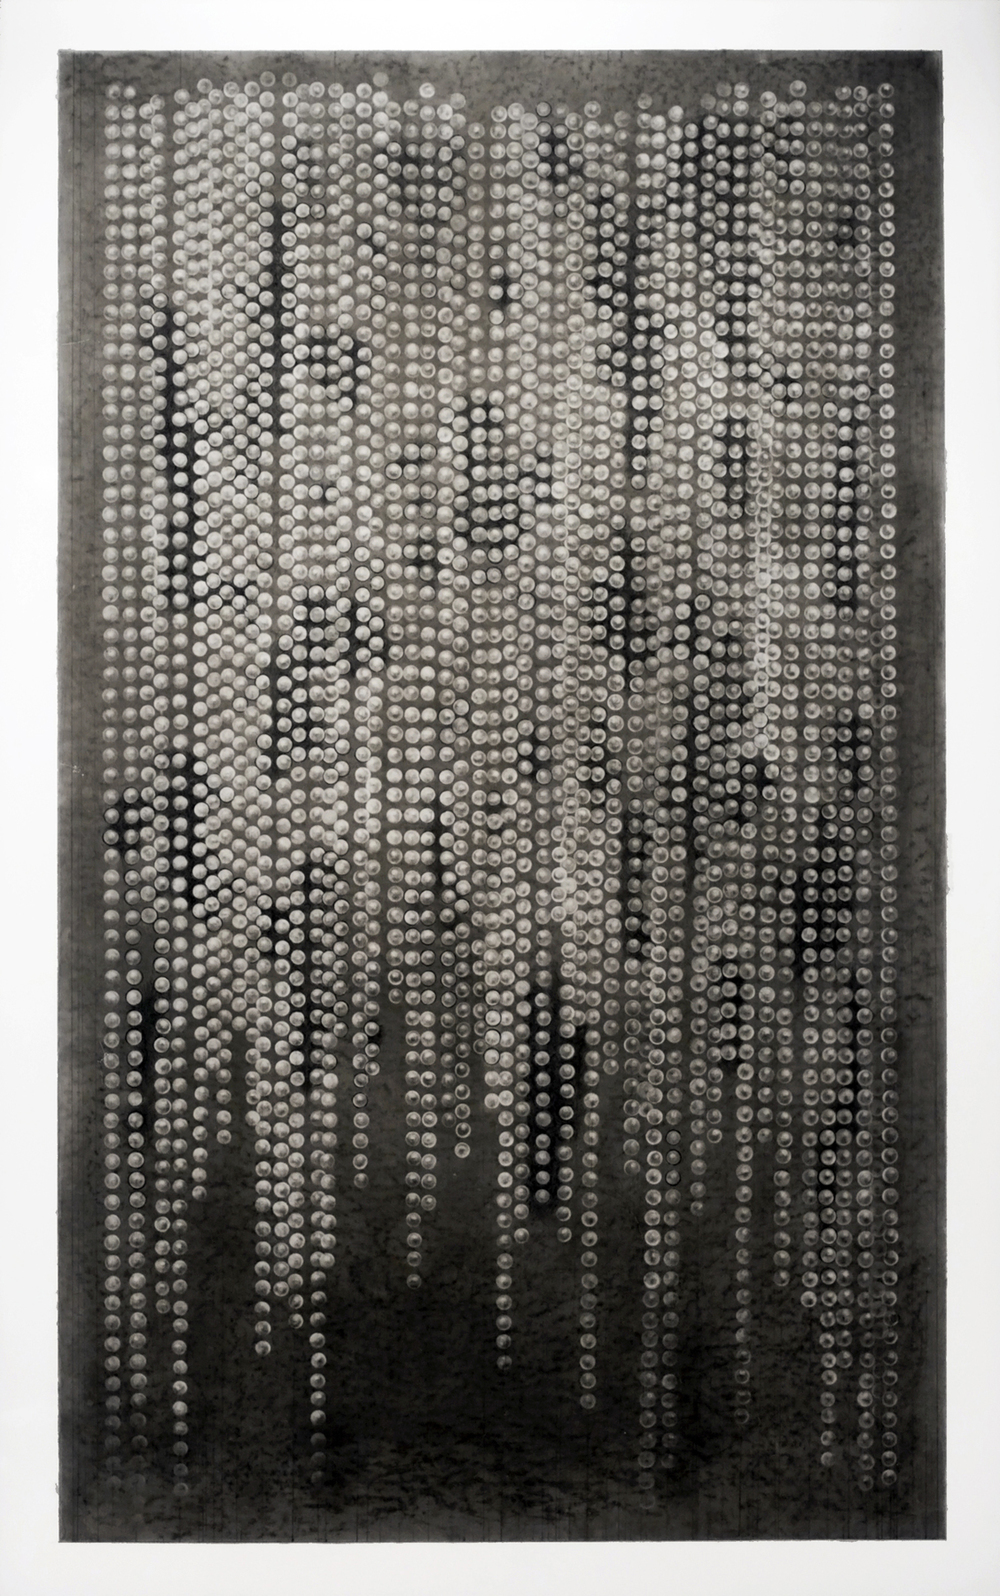 <b>Stringless beads</b><br>Graphite, charcoal, and eraser on mylar<br>40 x 25 in.